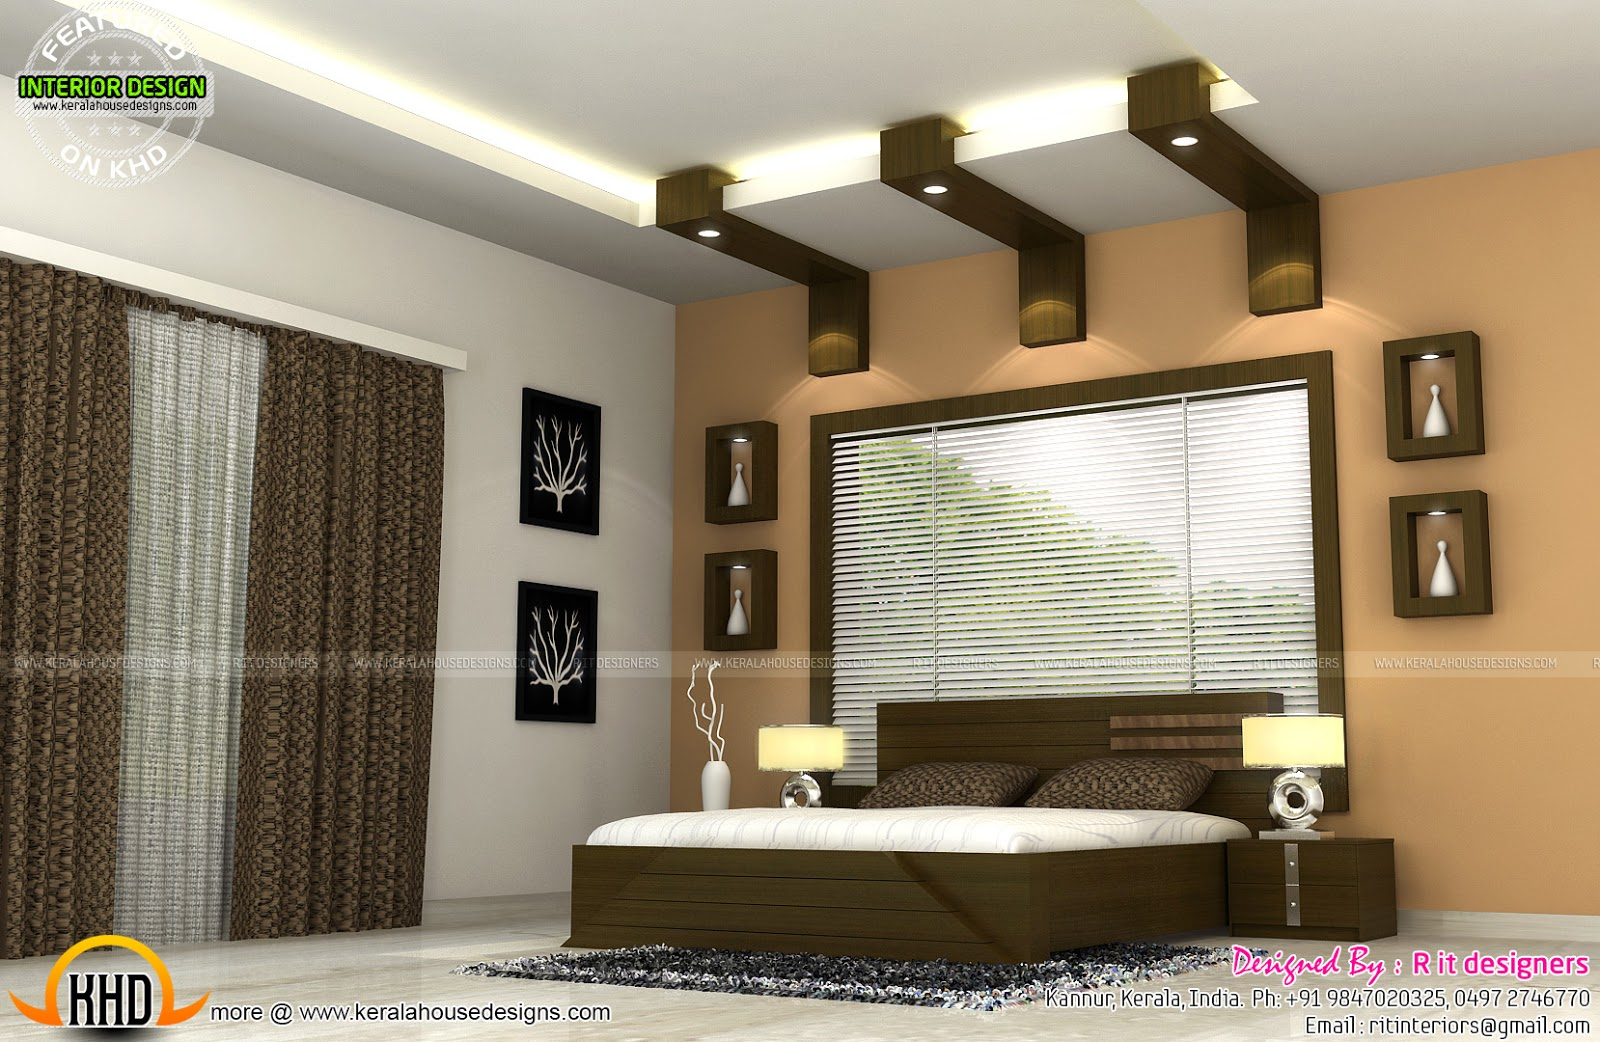 Interiors of bedrooms and kitchen kerala home design and for 1 room kitchen interior design